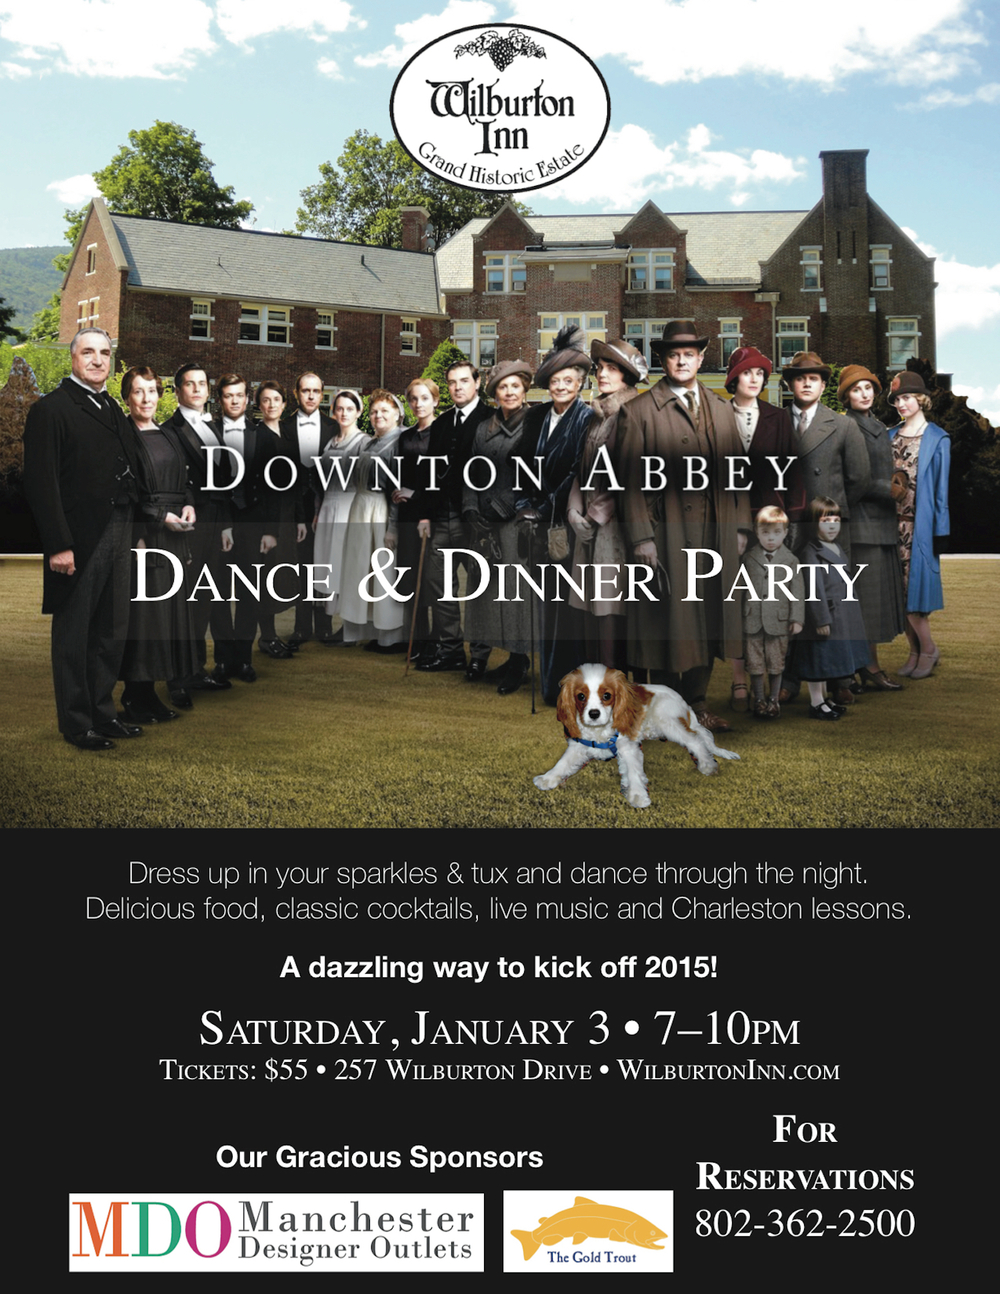 DowntonAbbeyWilburtonInn copy.jpg